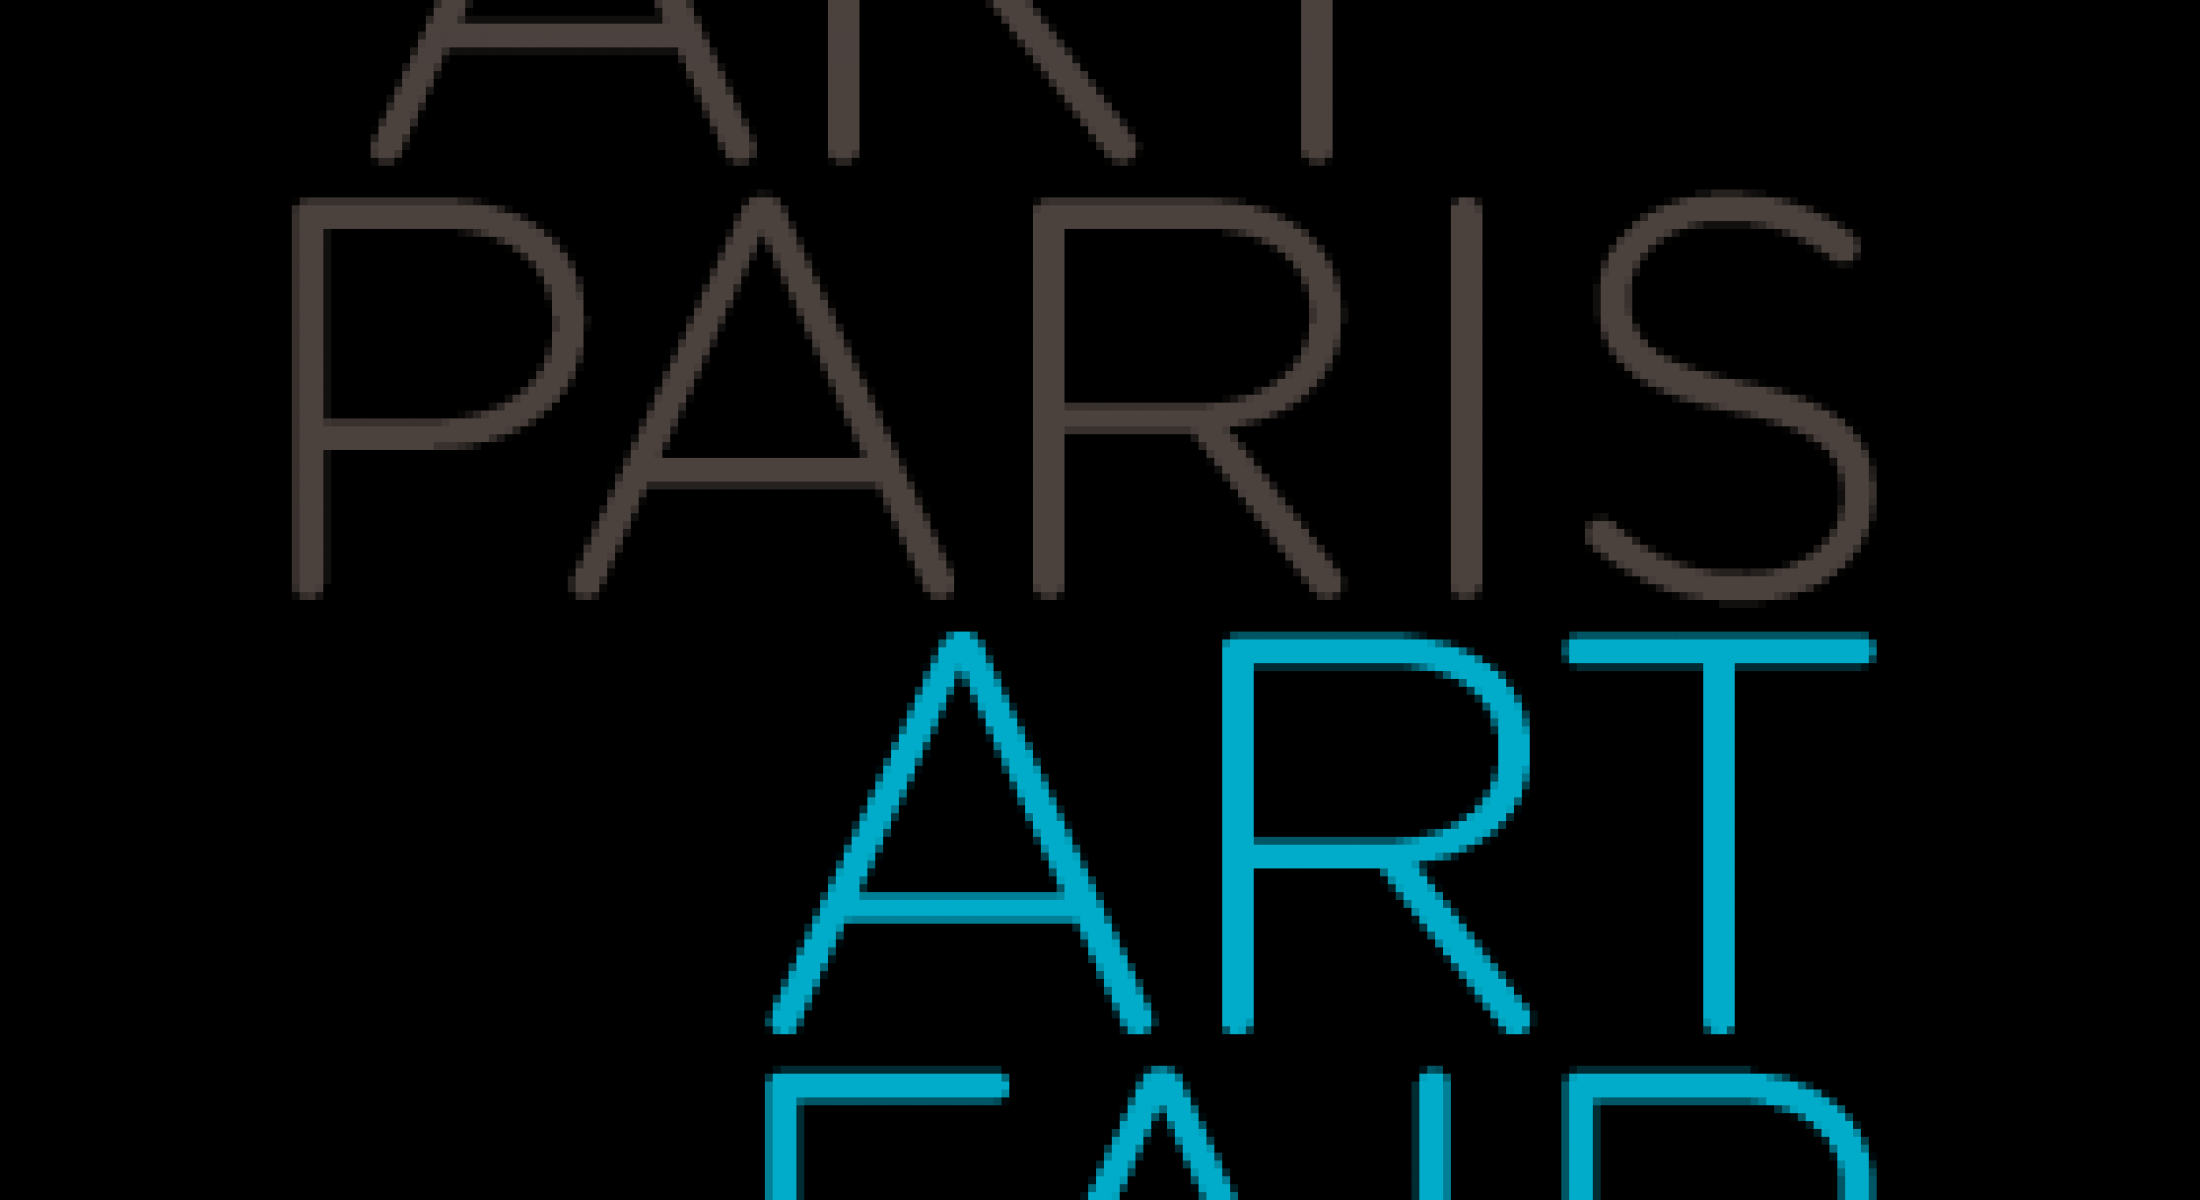 Thomas Houseago, Almost Human